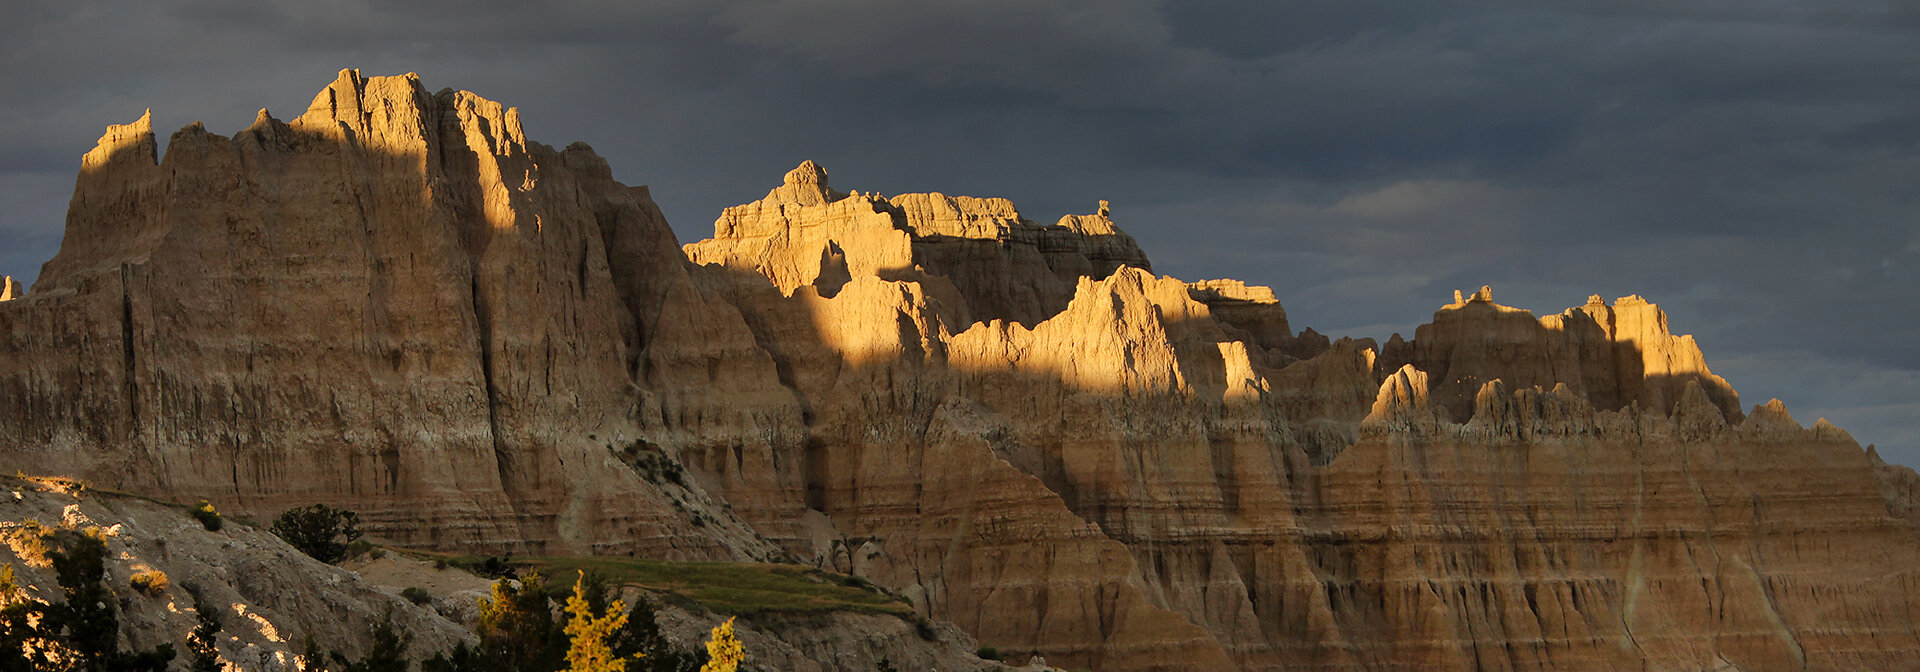 South Dakota: Black Hills, Badlands & Mickelson Trail